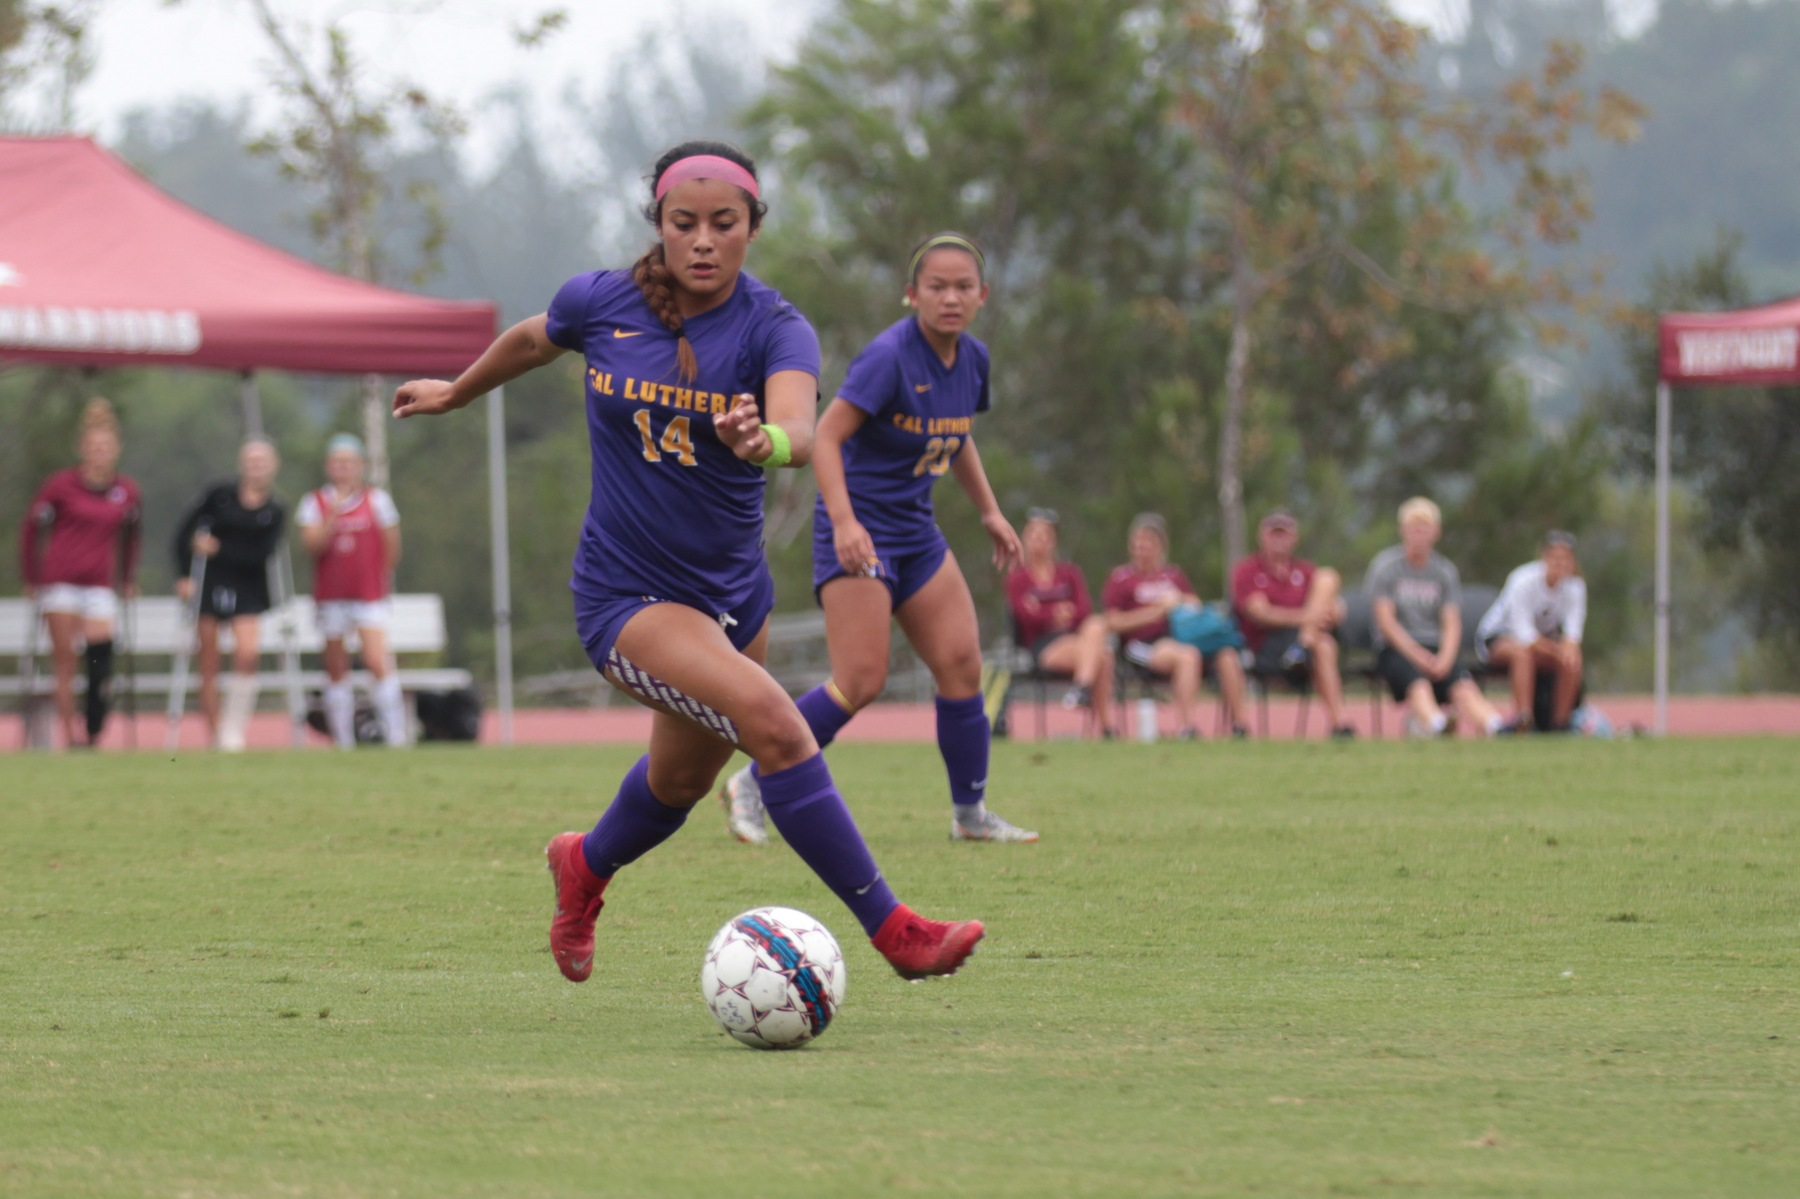 Regals Surge to 5-1 Victory Over Leopards